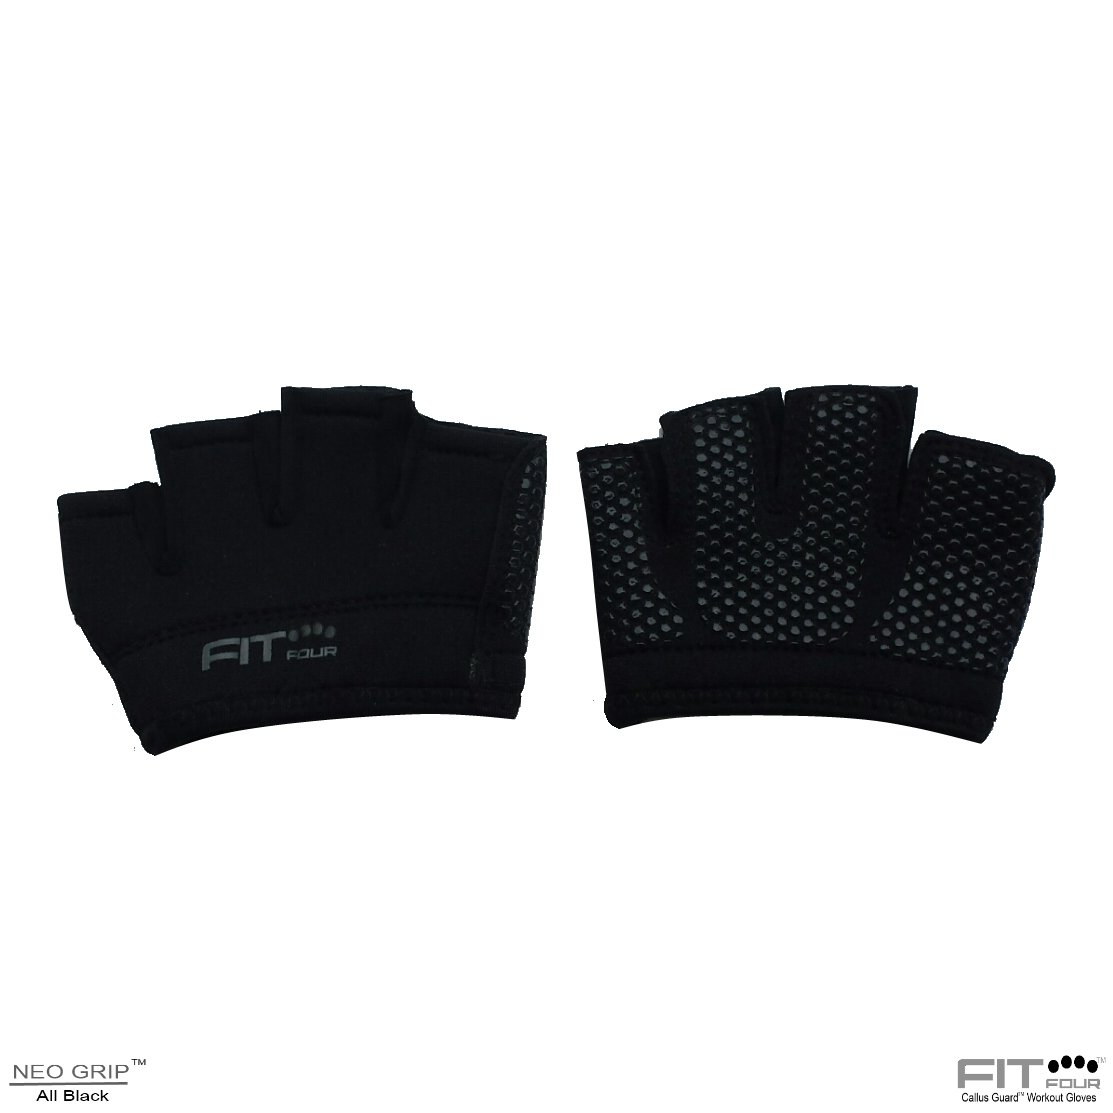 Fingerless gloves edmonton - The Neo Grip Glove Fit Four Callus Guard Fitness Gloves For Cross Training Weightlifting Yoga Enhanced Grip Palm Gloves Amazon Canada